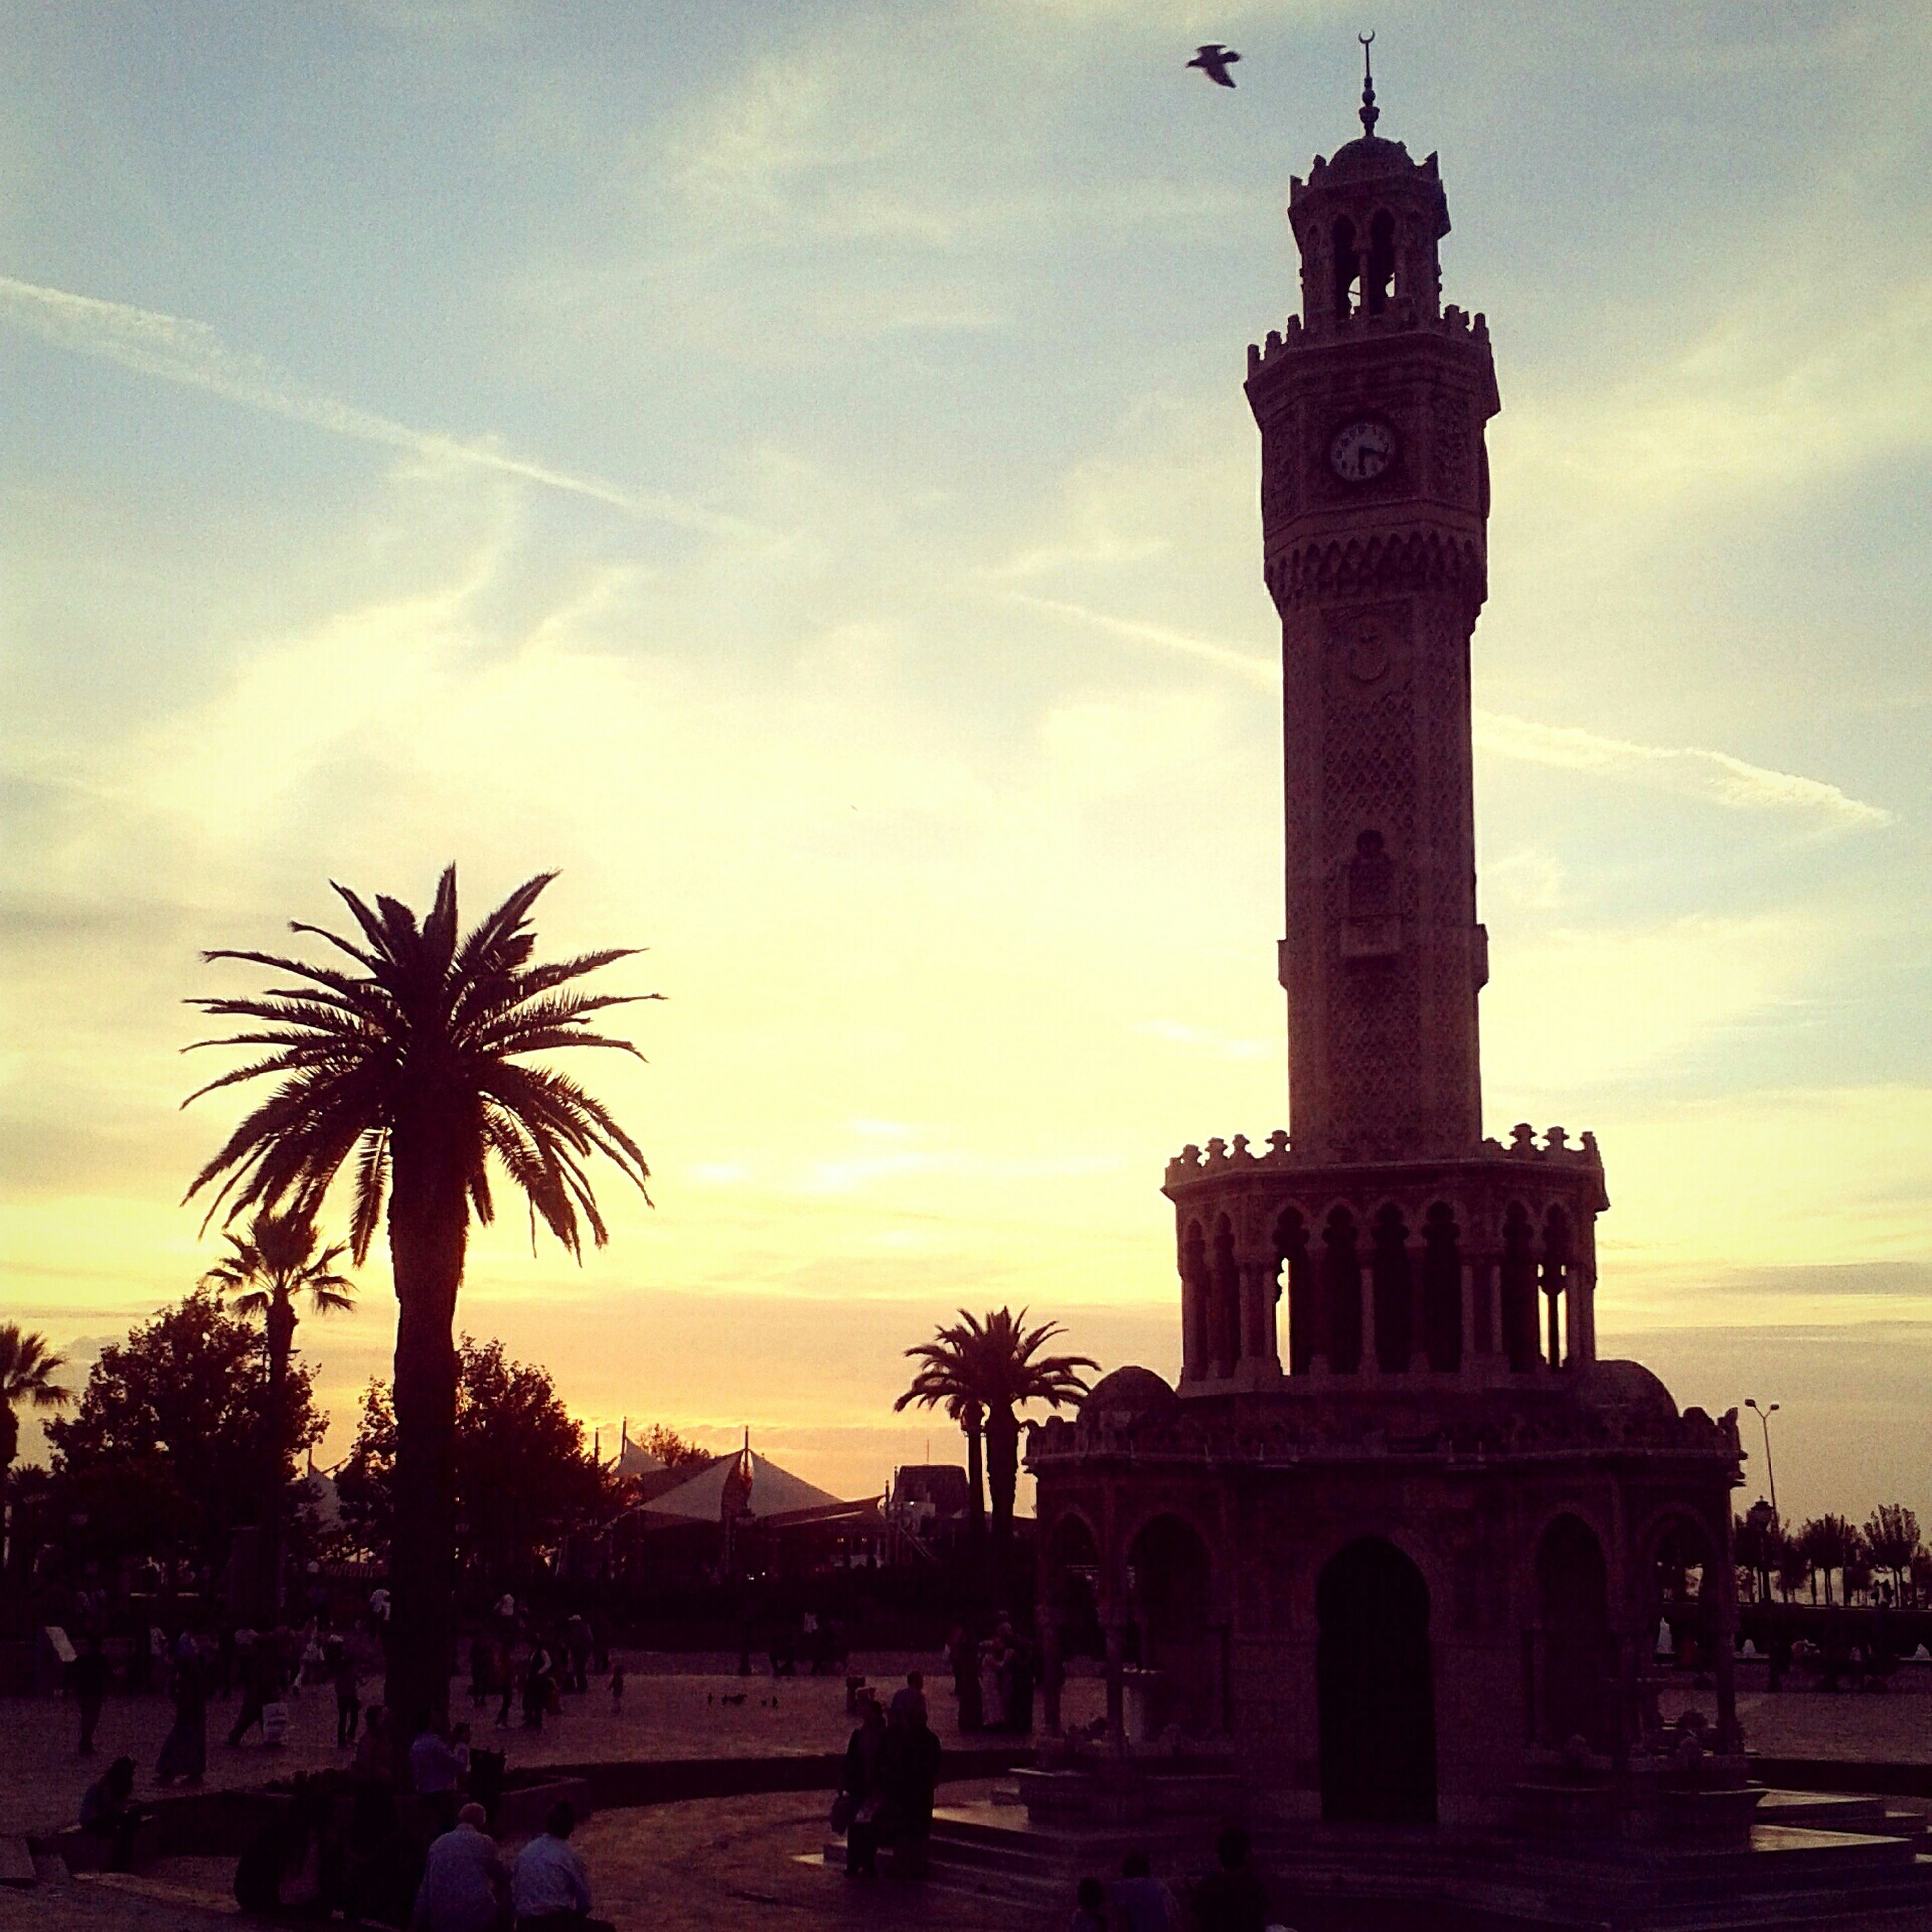 sunset, architecture, built structure, sky, building exterior, silhouette, palm tree, famous place, incidental people, tourism, travel destinations, history, travel, tree, tower, sea, cloud - sky, religion, tourist, place of worship